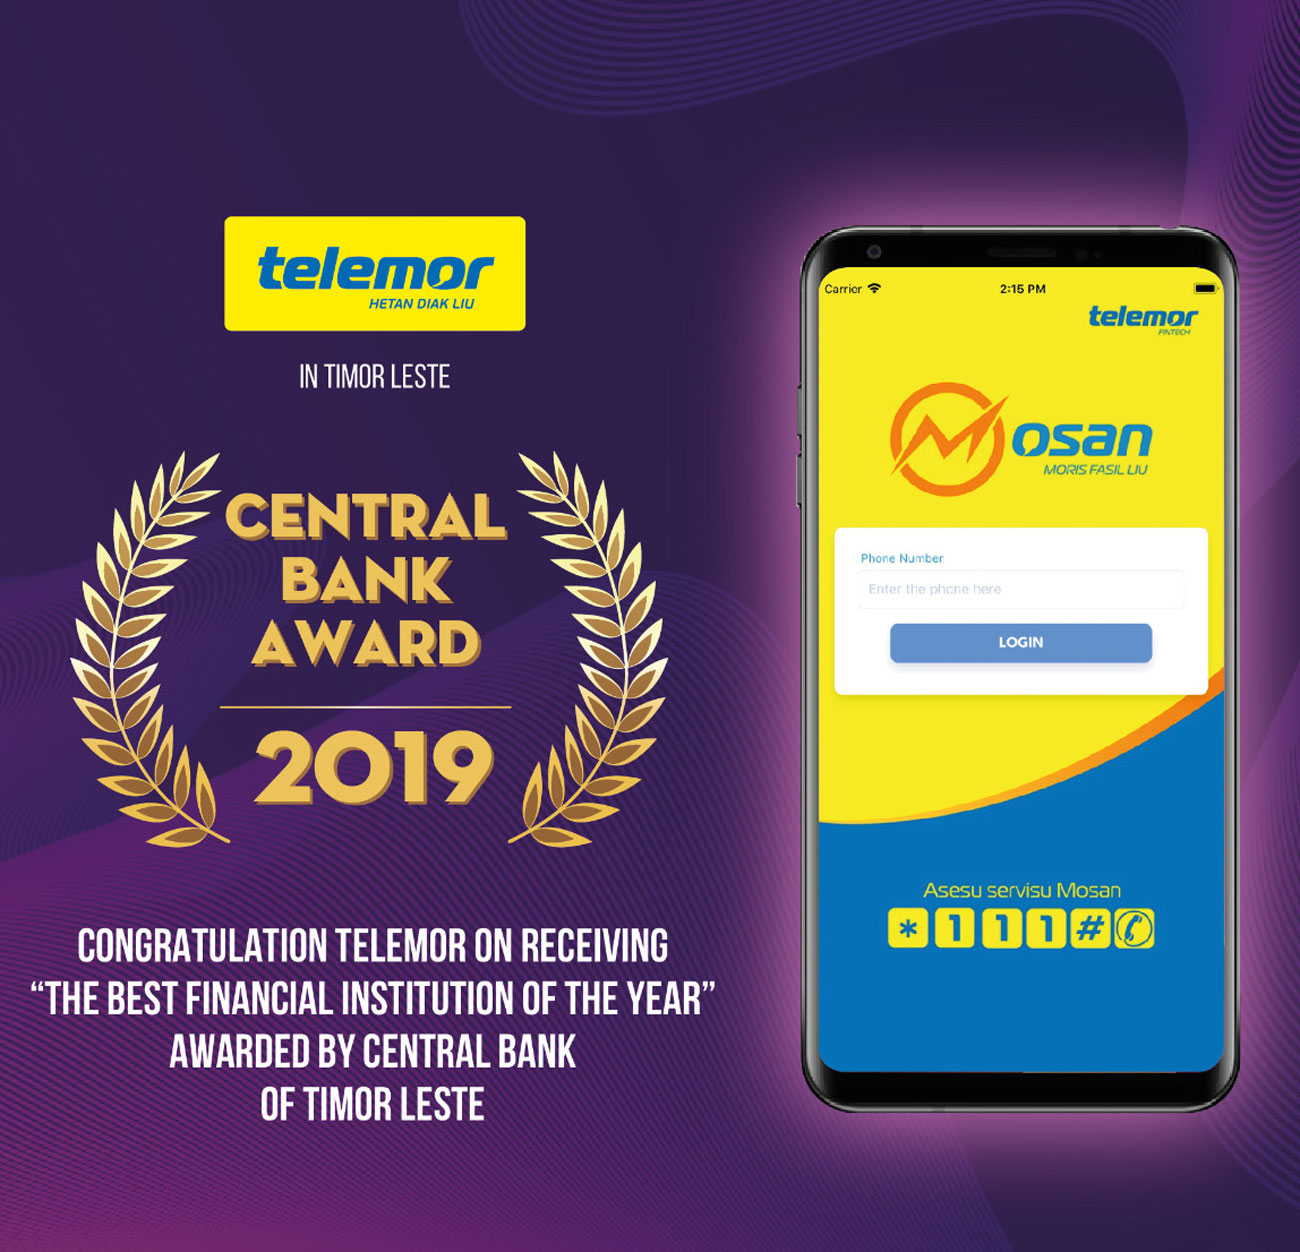 Mosan e-wallet wins grand prize from the Central Bank of Timor Leste